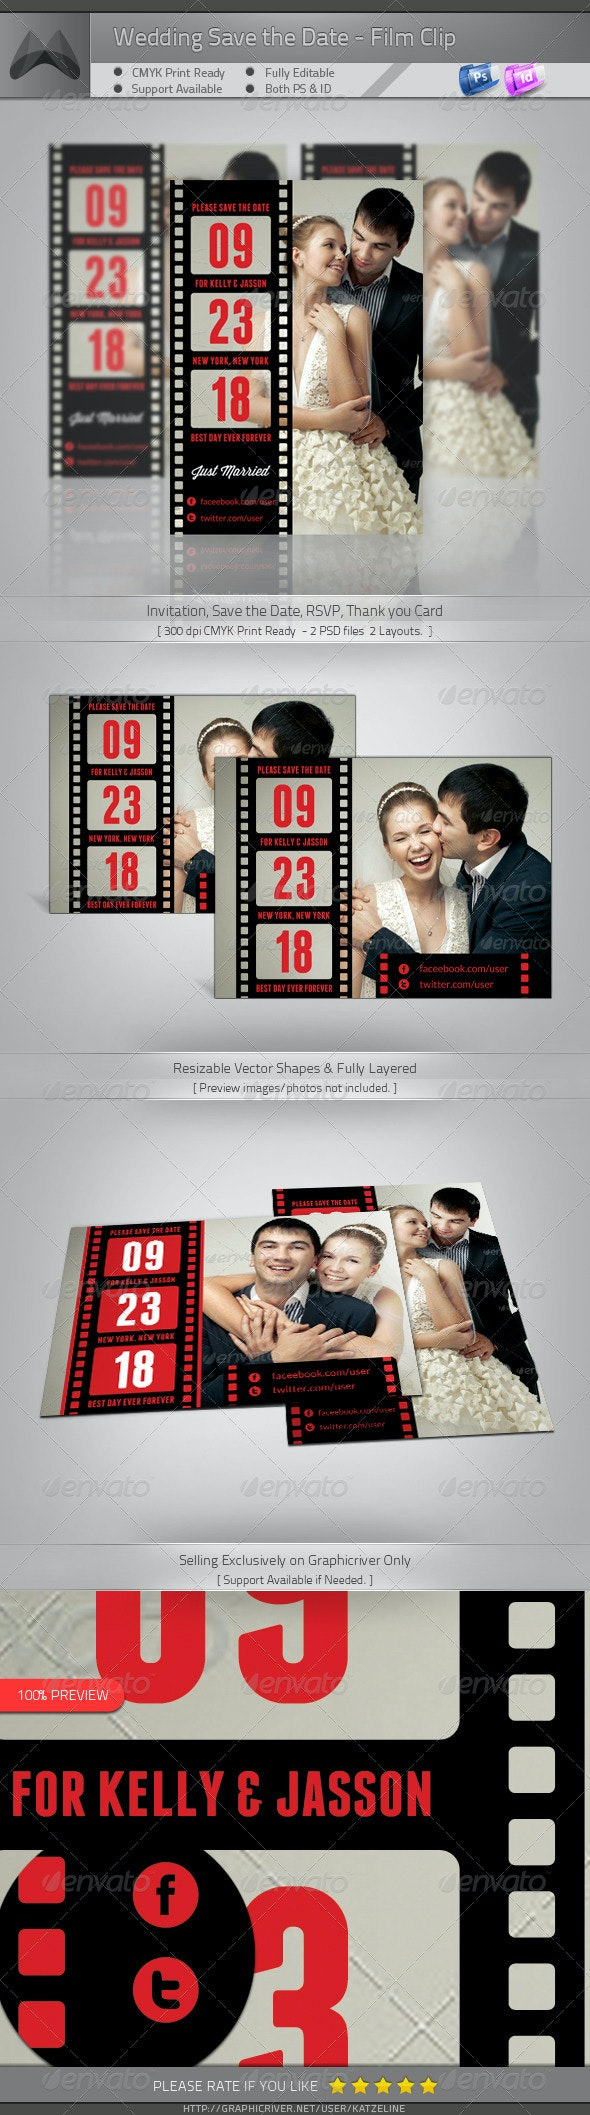 Love Film Clip II - Wedding Save the Date Template - Weddings Cards & Invites